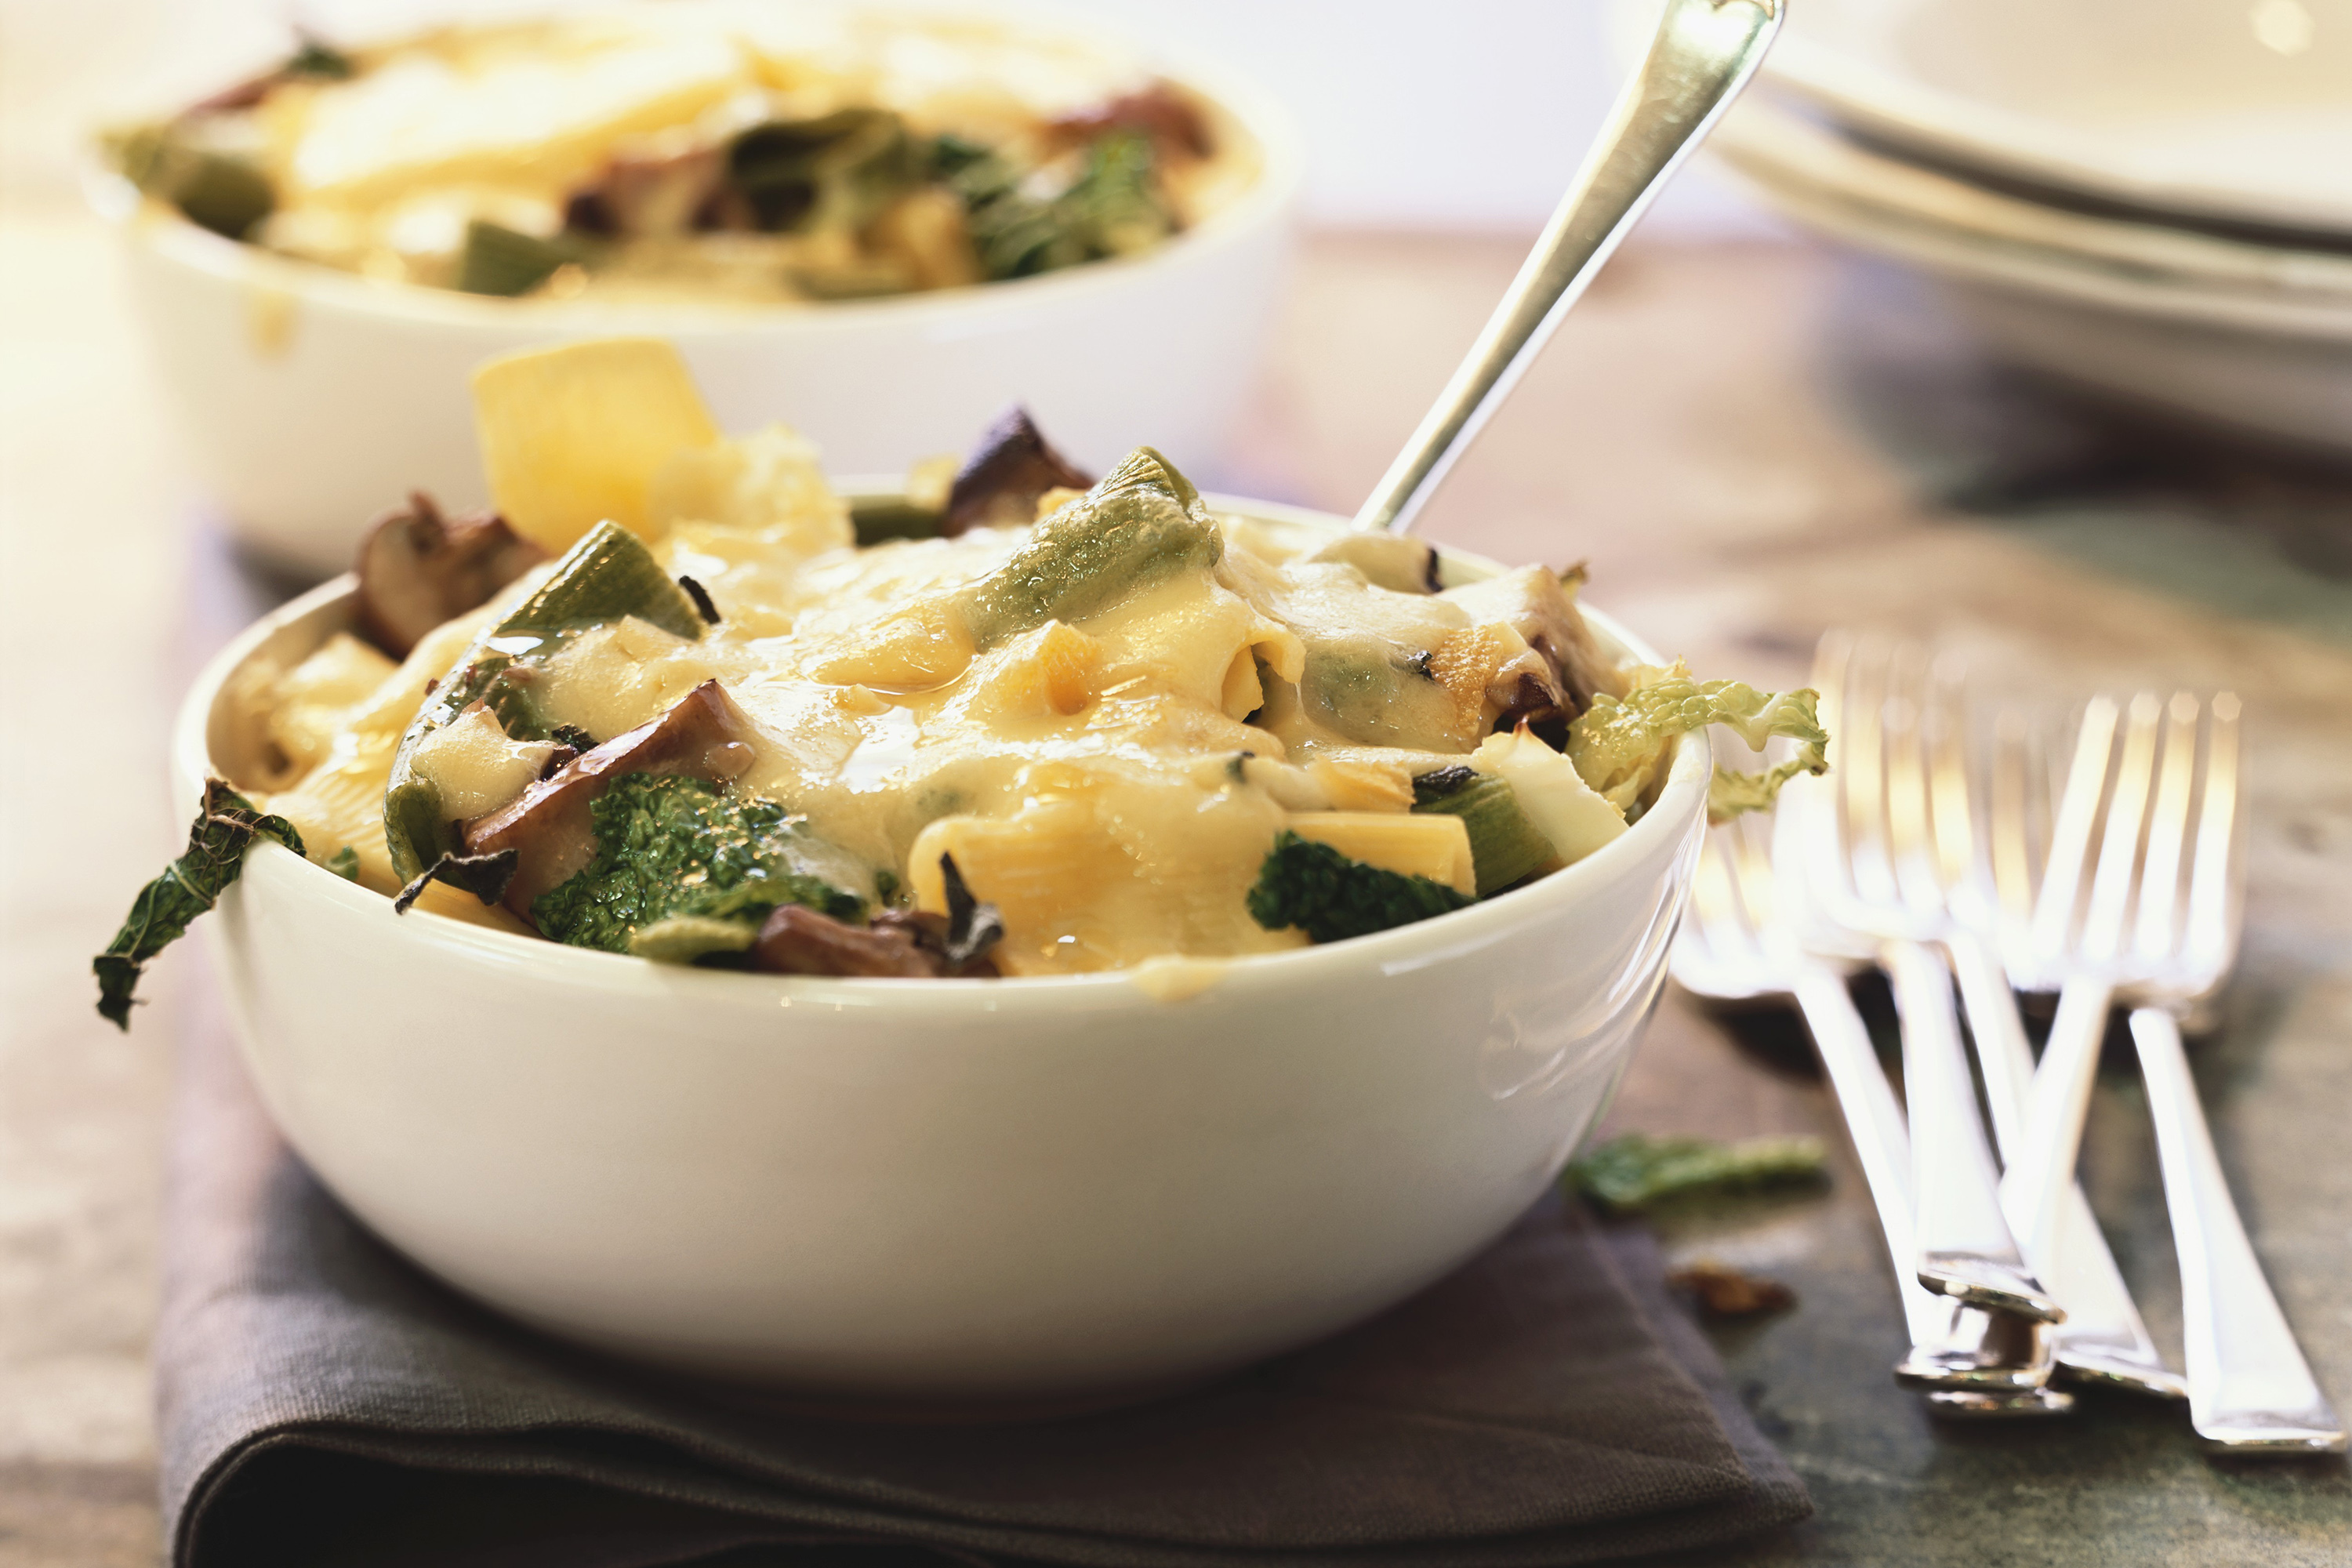 Pasta Bake with Cheese, Mushrooms and Kale